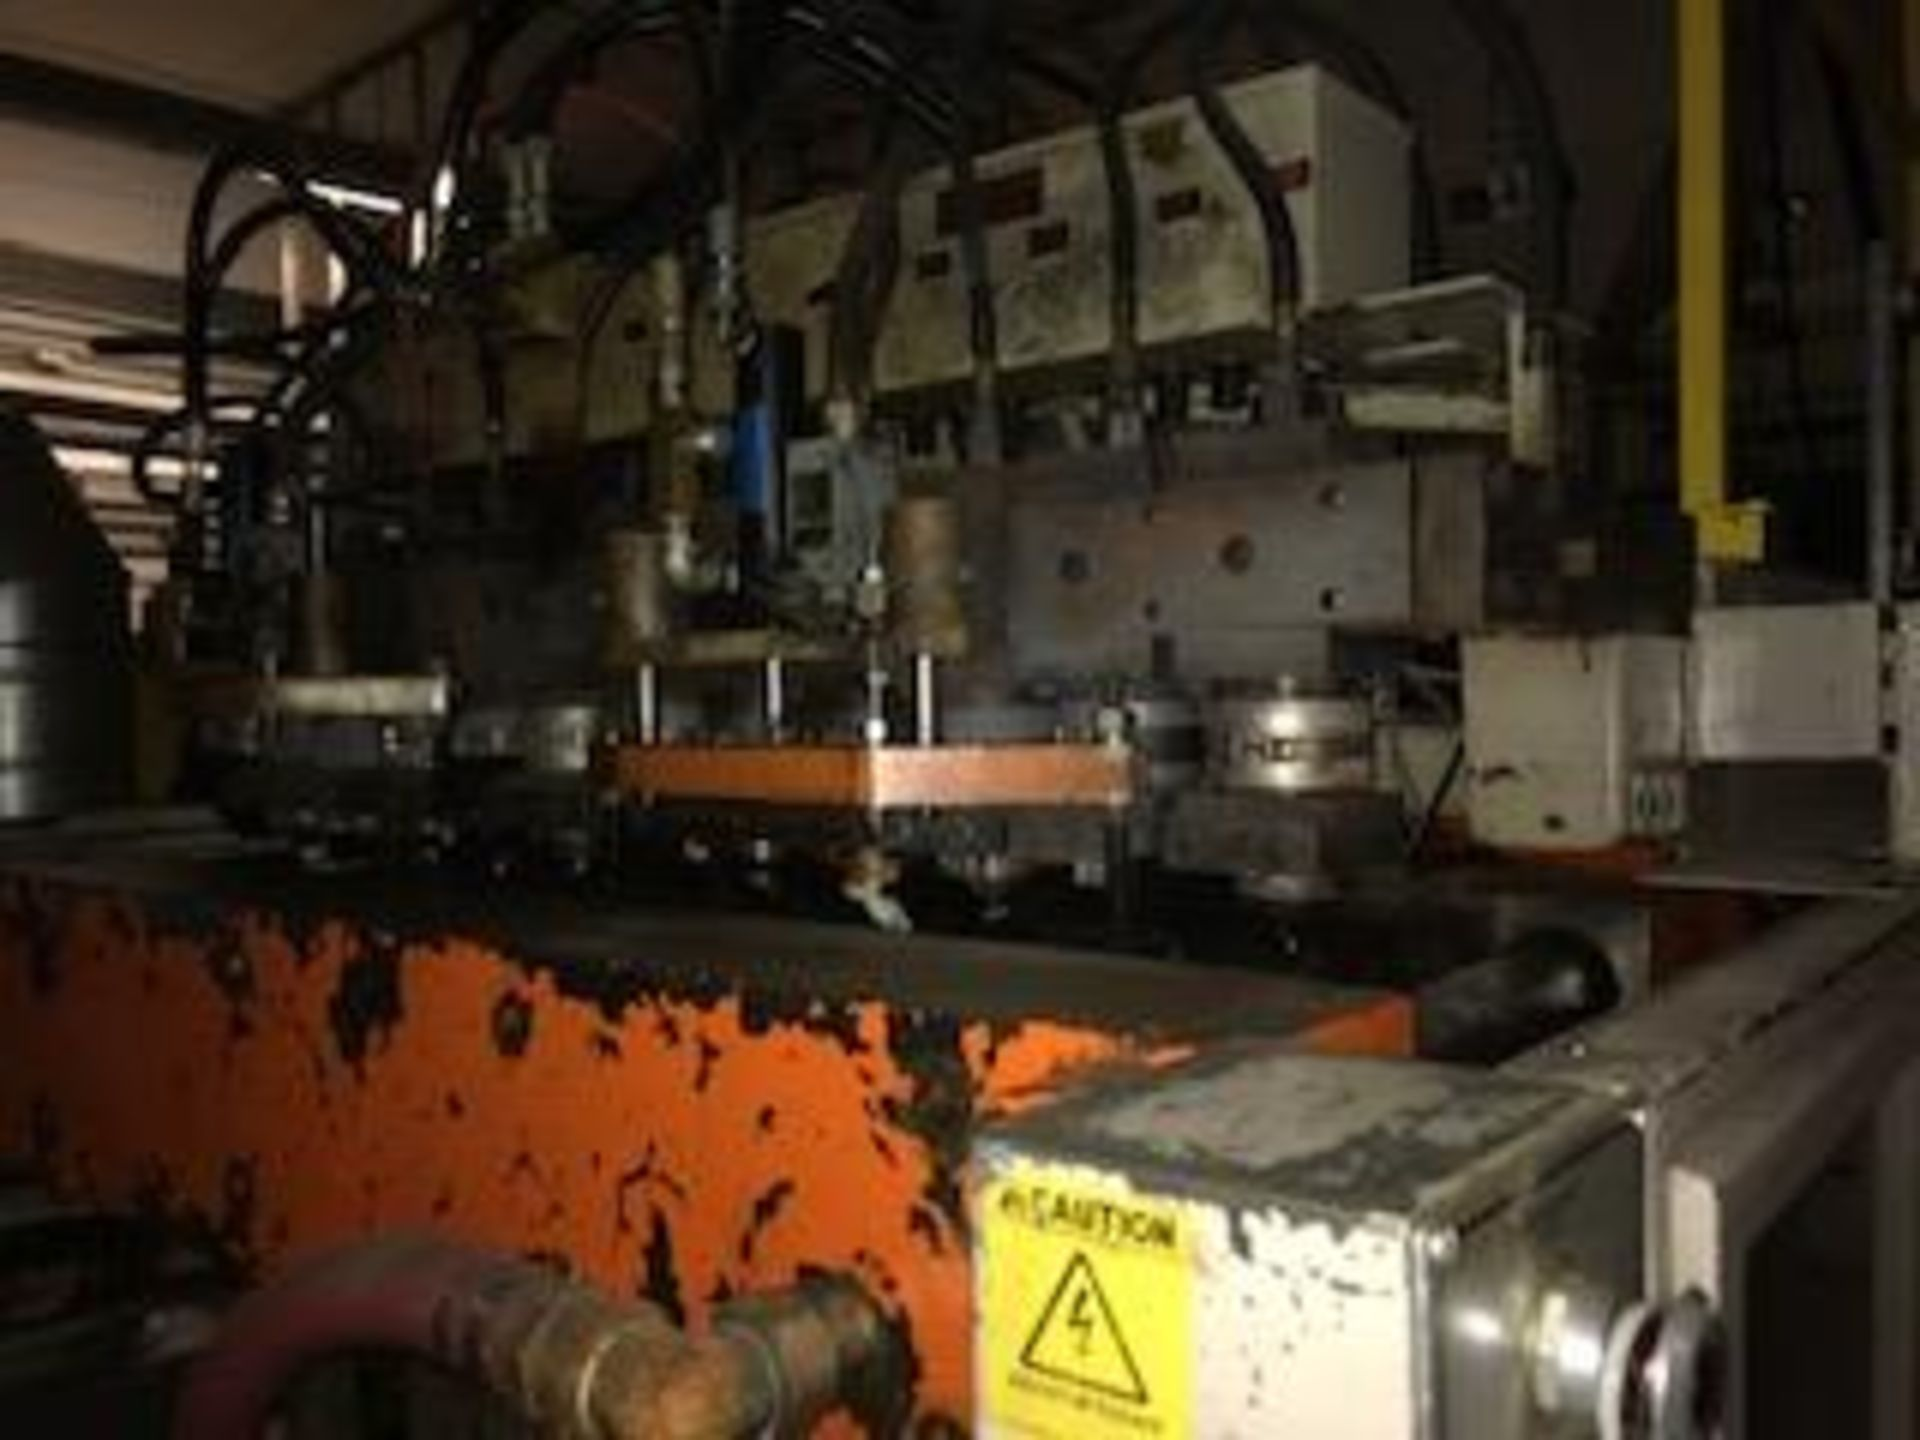 Uniloy Milacron 12-Head Blow Molding Machine Model RS13500, S/N 89105 | Rig Fee: $14500 - Image 5 of 5